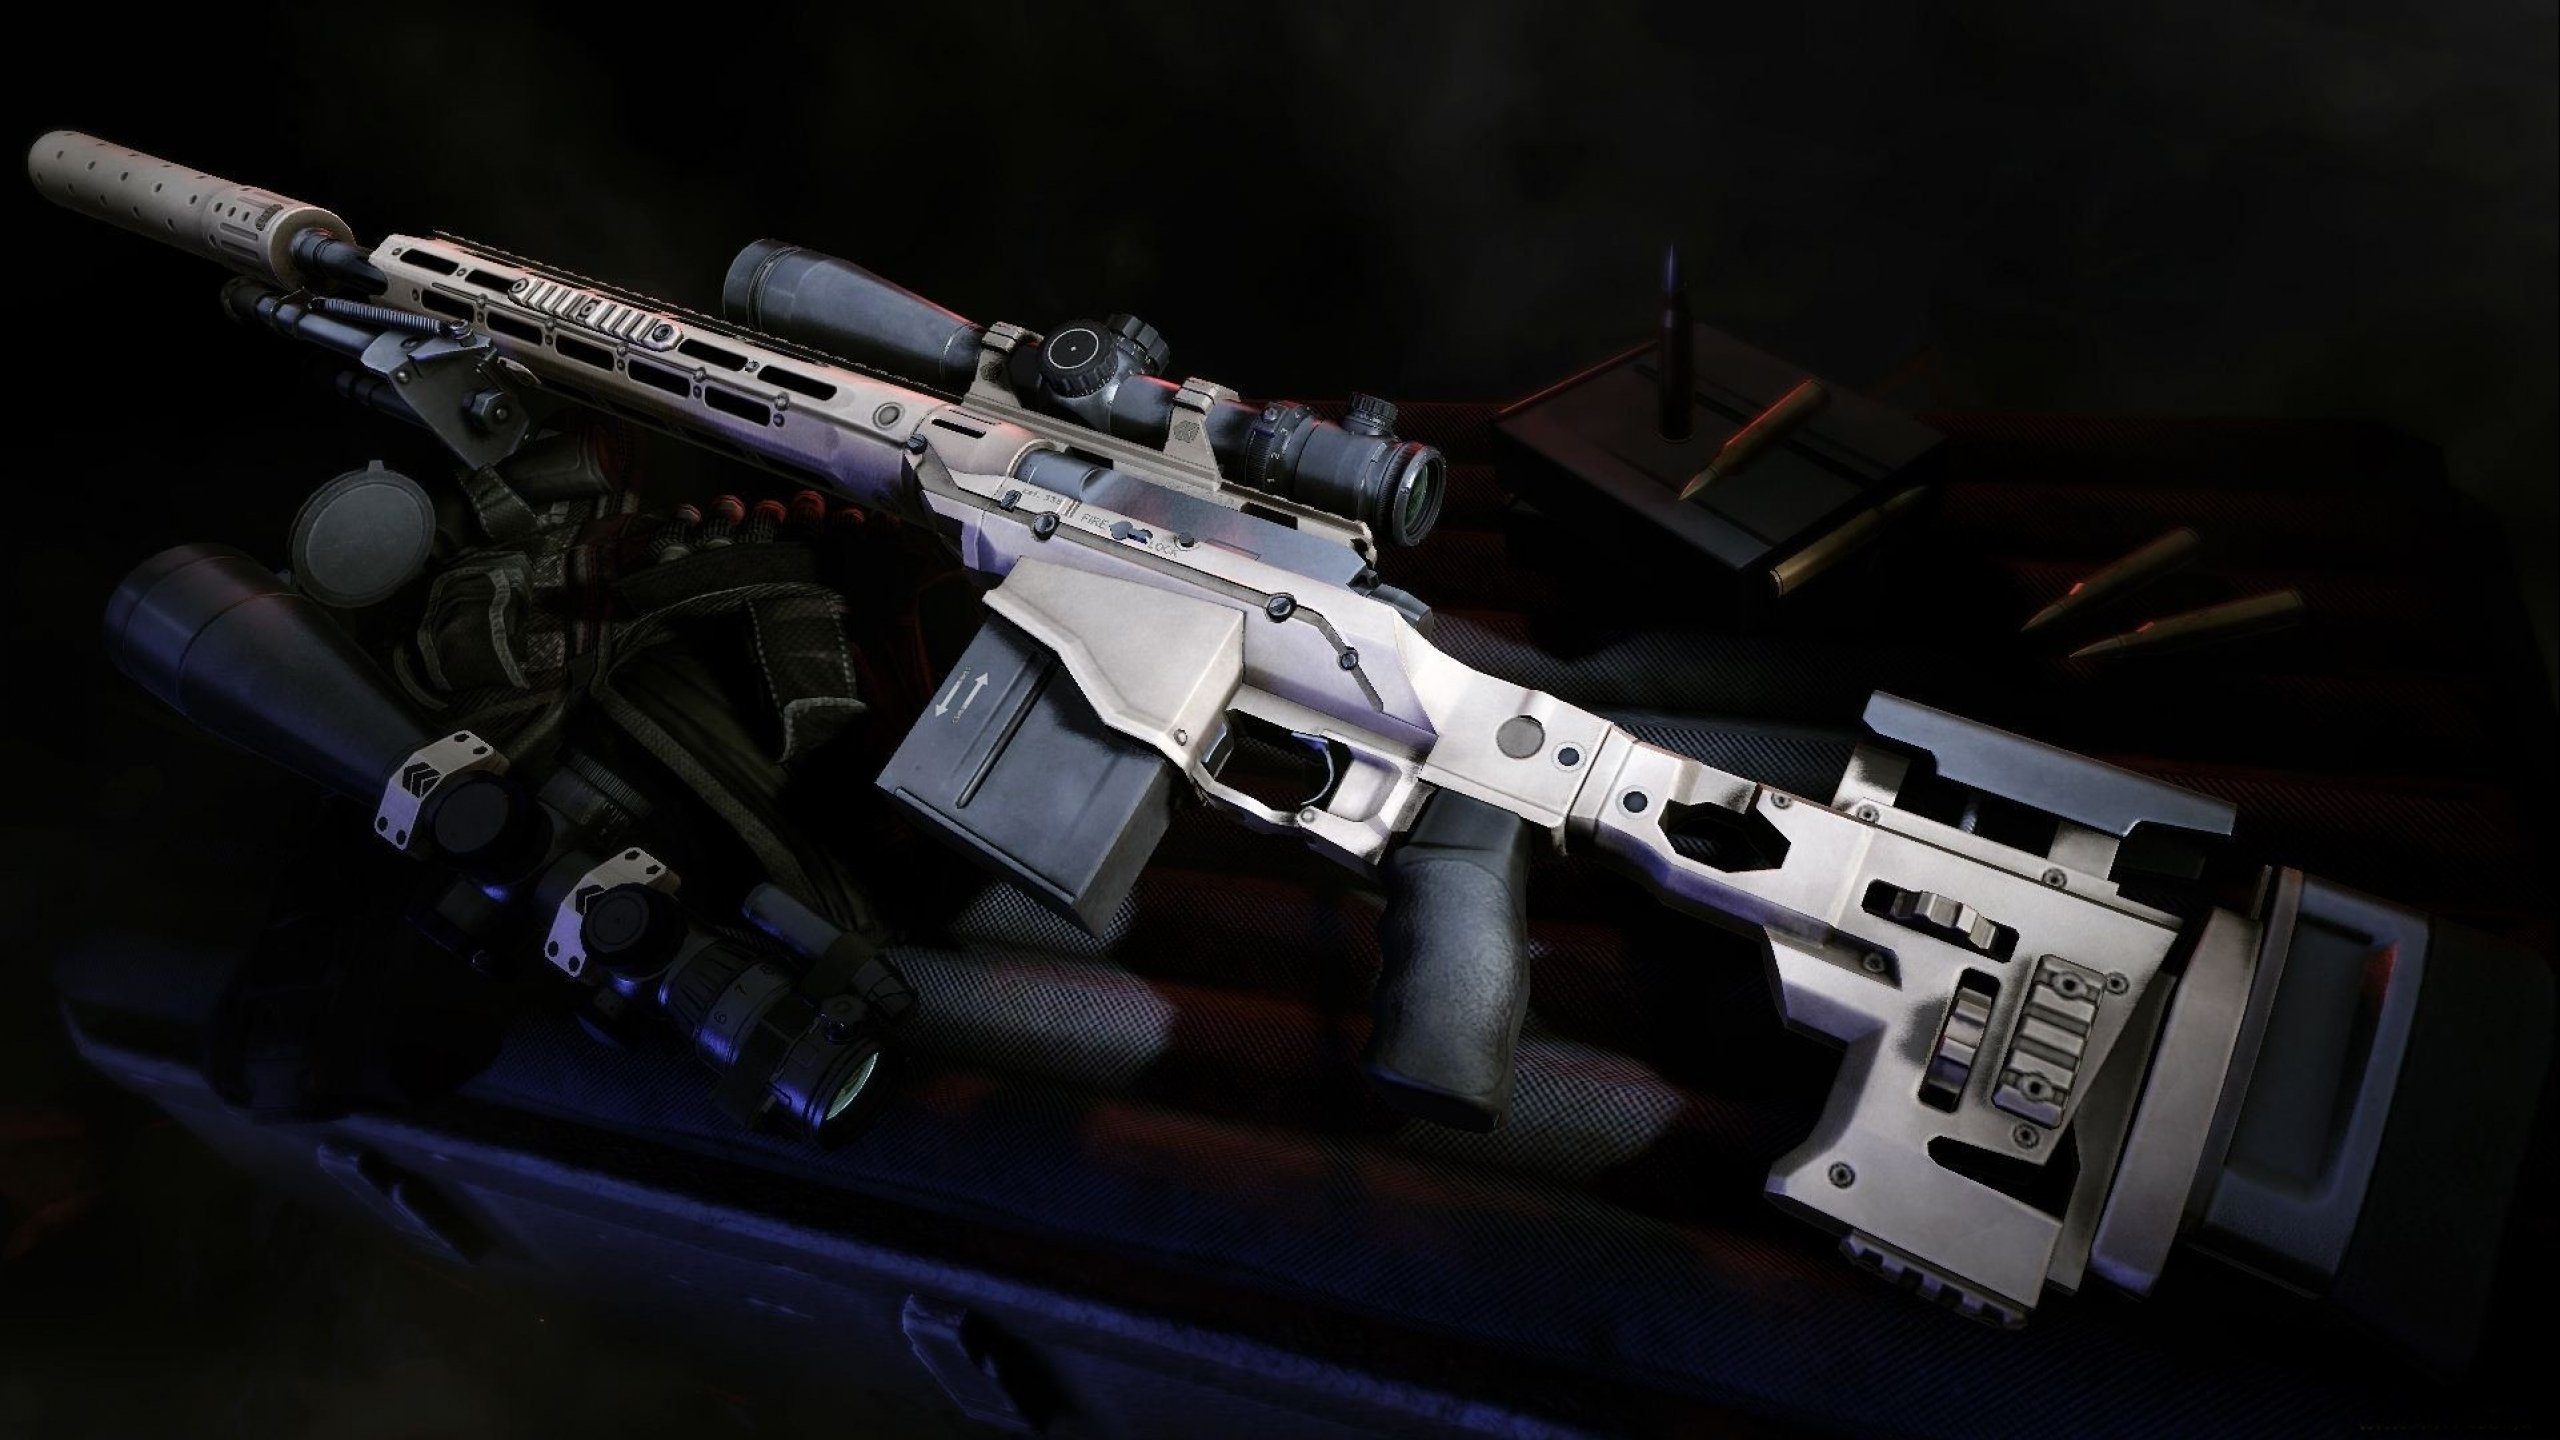 Free Download Tactical Shooter Stealth Military Action 1sgw Weapon Gun Wallpaper 2560x1440 For Your Desktop Mobile Tablet Explore 45 Tactical Shotgun Wallpaper Tactical Shotgun Wallpaper Shotgun Shell Wallpaper Spikes Tactical Wallpaper